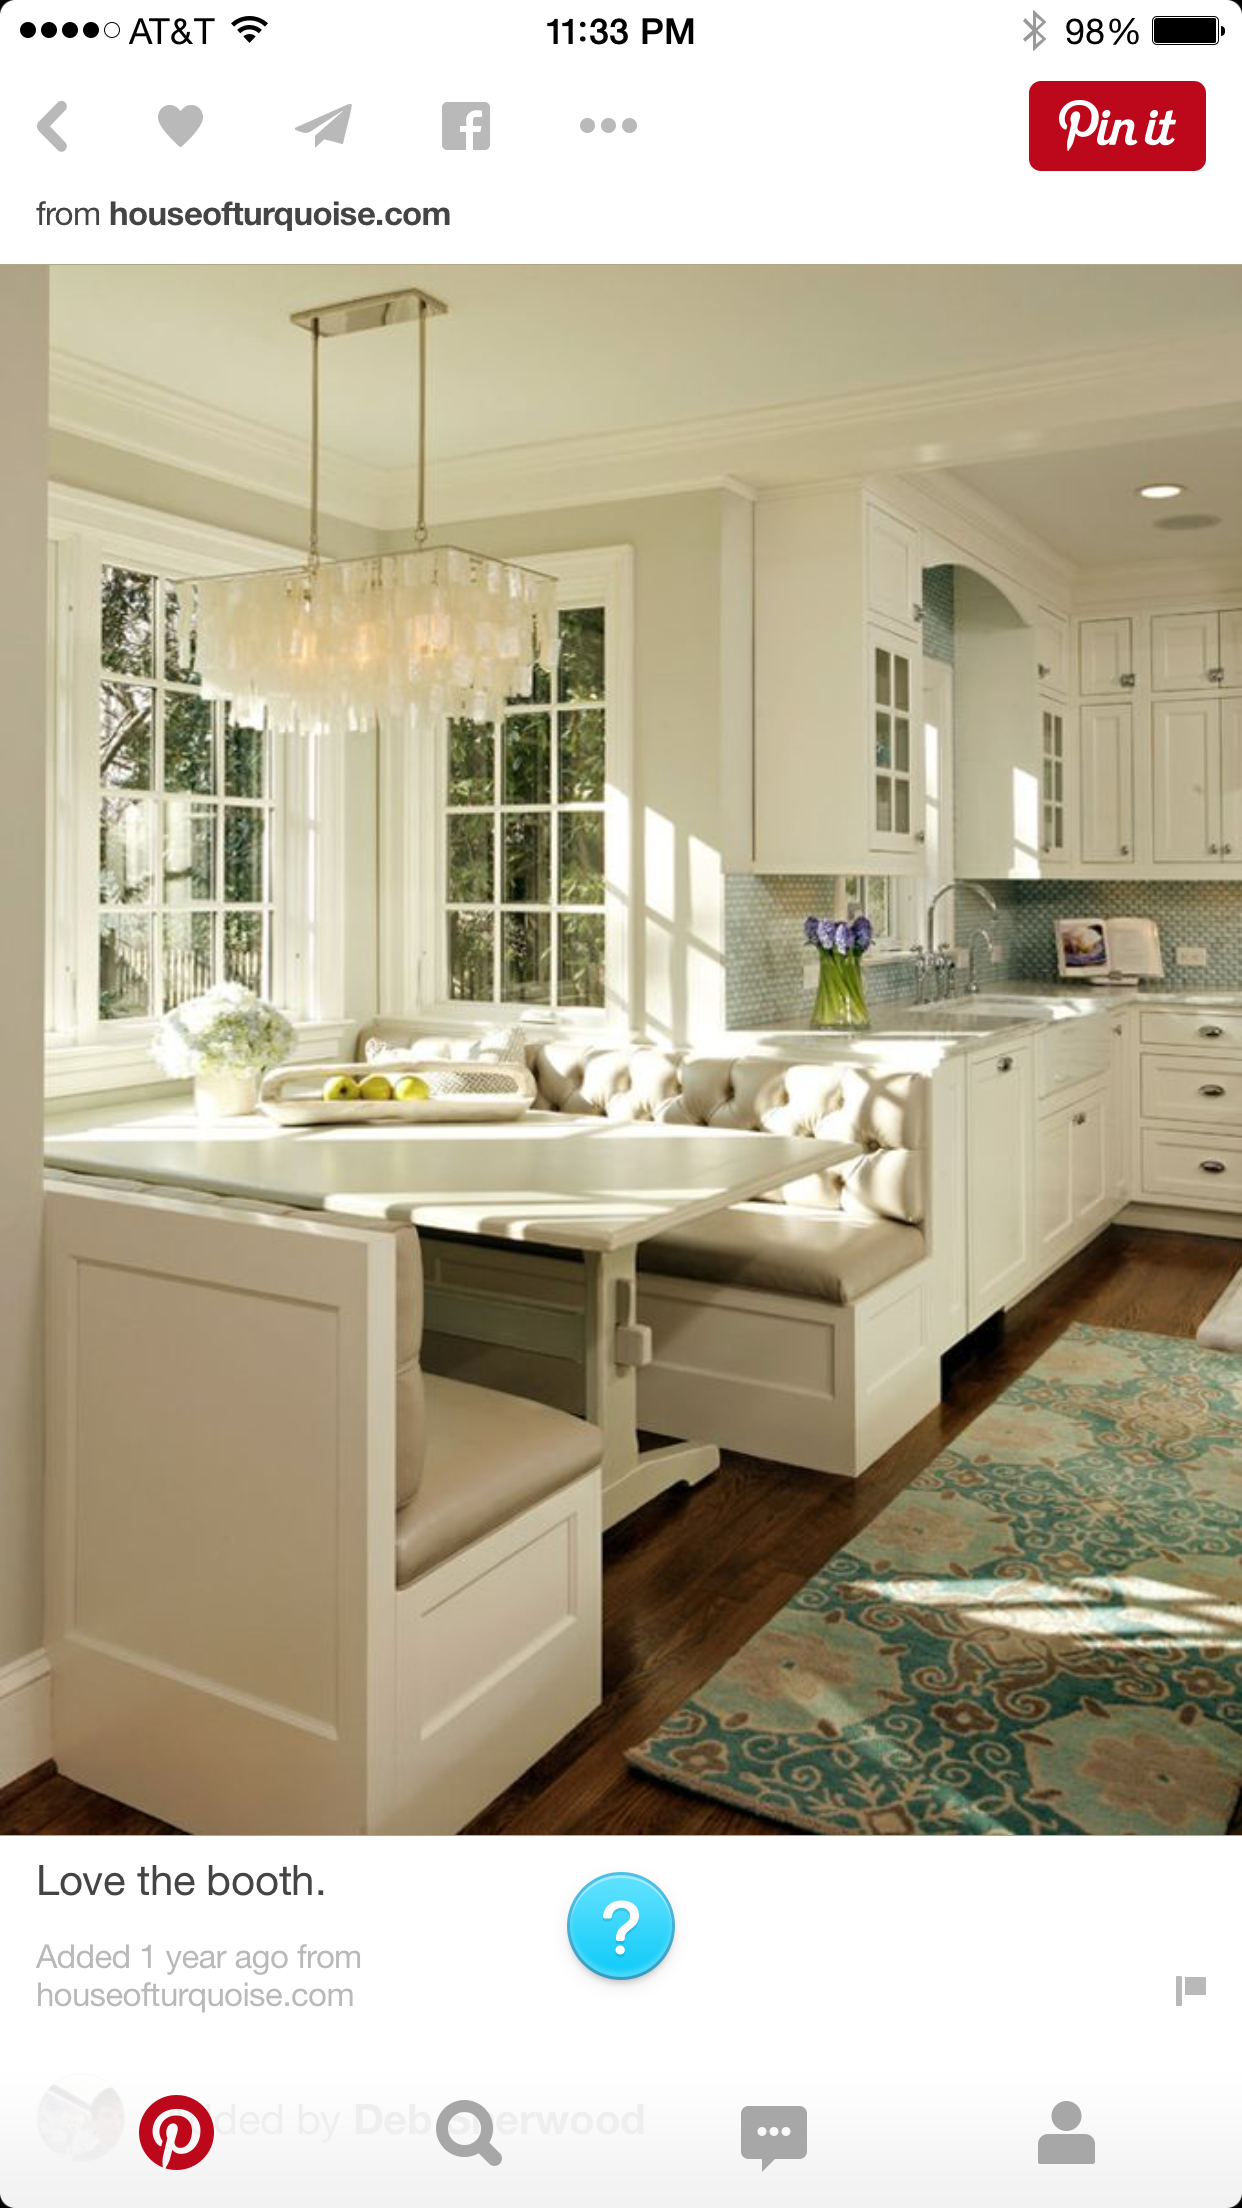 Pin by Jo Ann on Kitchens and Dinning Rooms | Pinterest | Kitchens ...